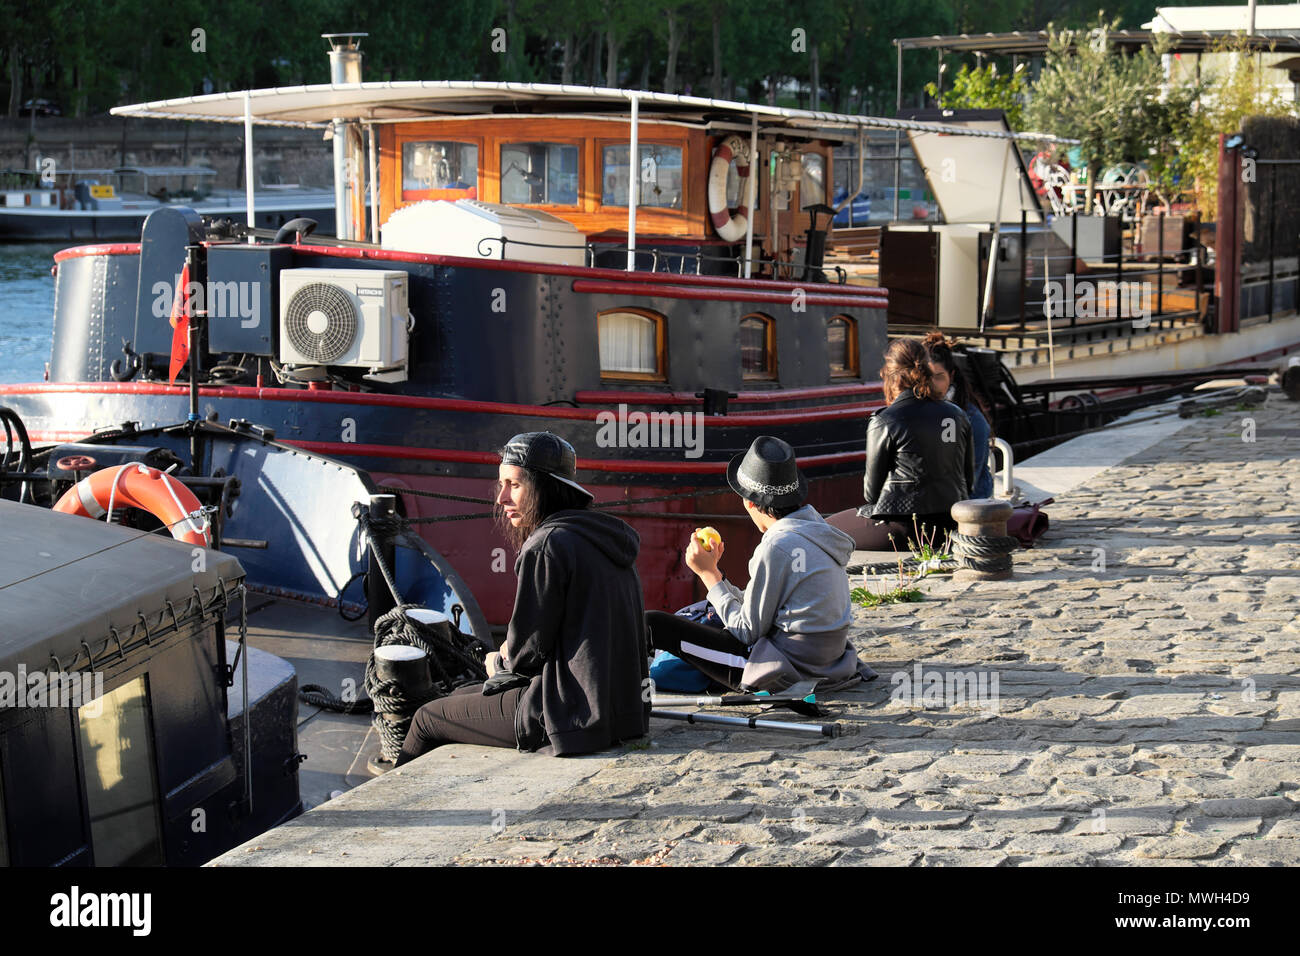 People sitting on a cobblestone quai by boats on the Left Bank along the River Seine on a spring afternoon in April Paris, France   KATHY DEWITT - Stock Image